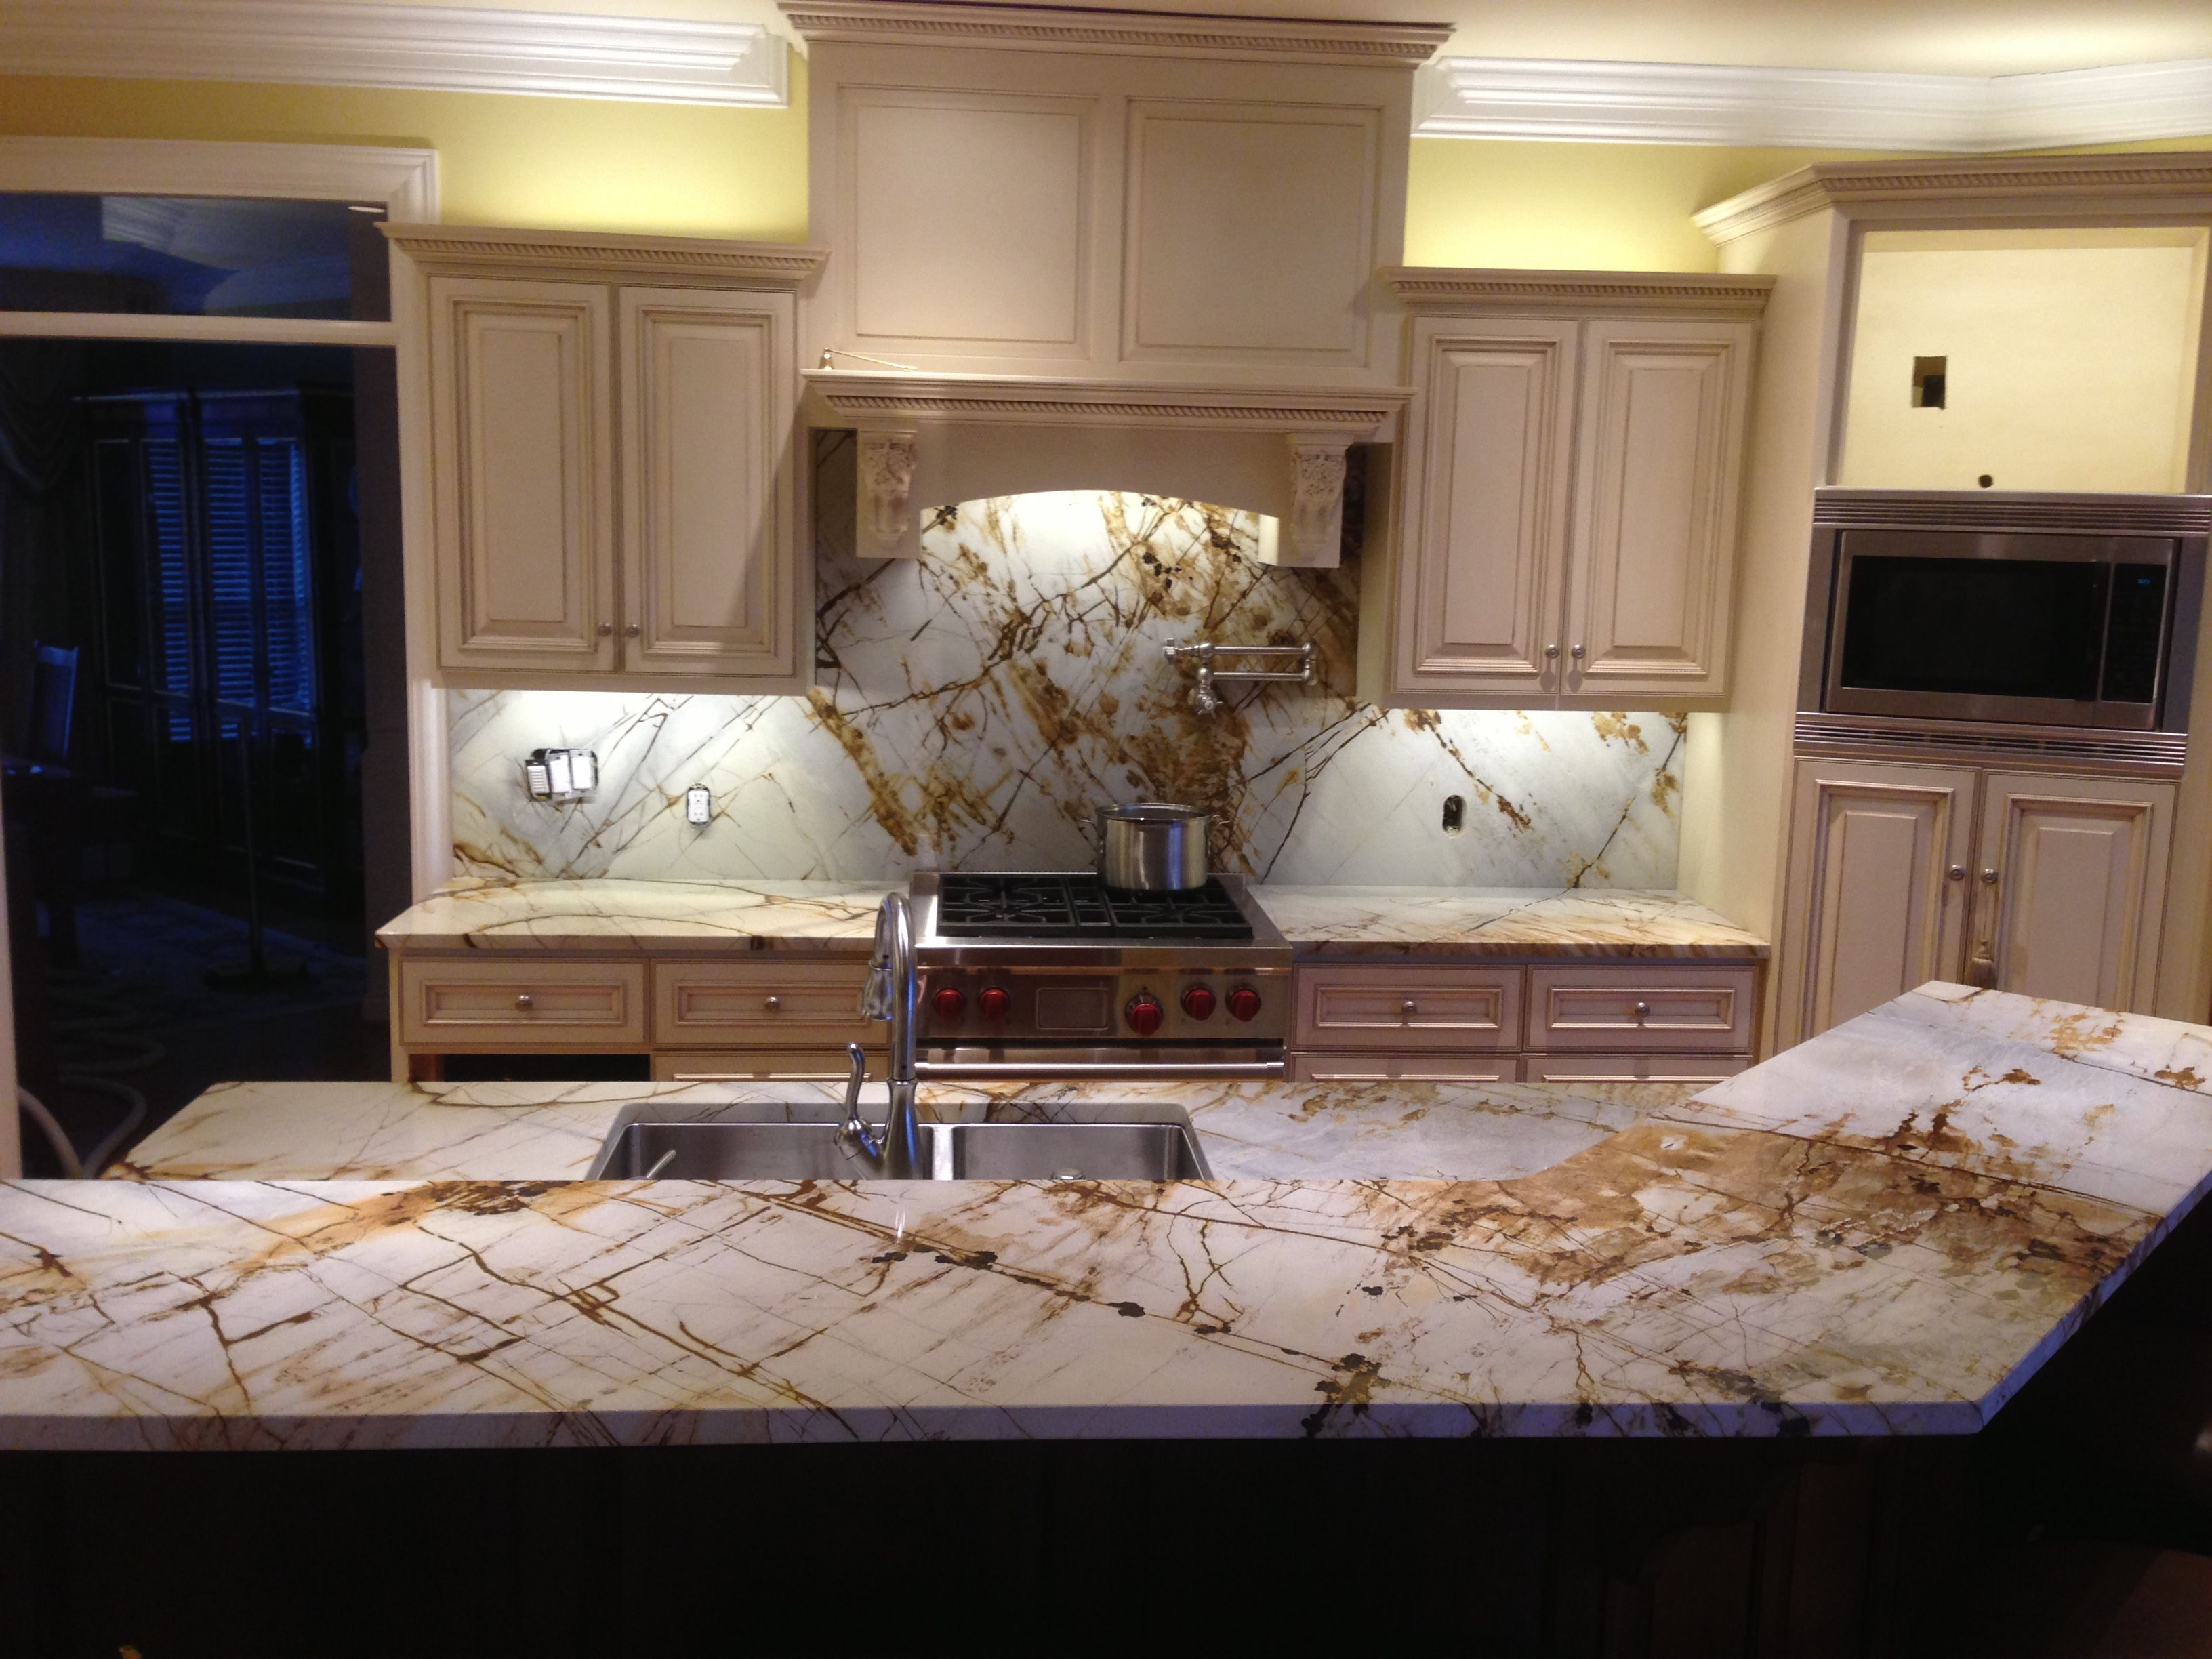 Granite With Cream Cabinets Roma Imperiale Quartzite With Full Height Backsplash And Cream